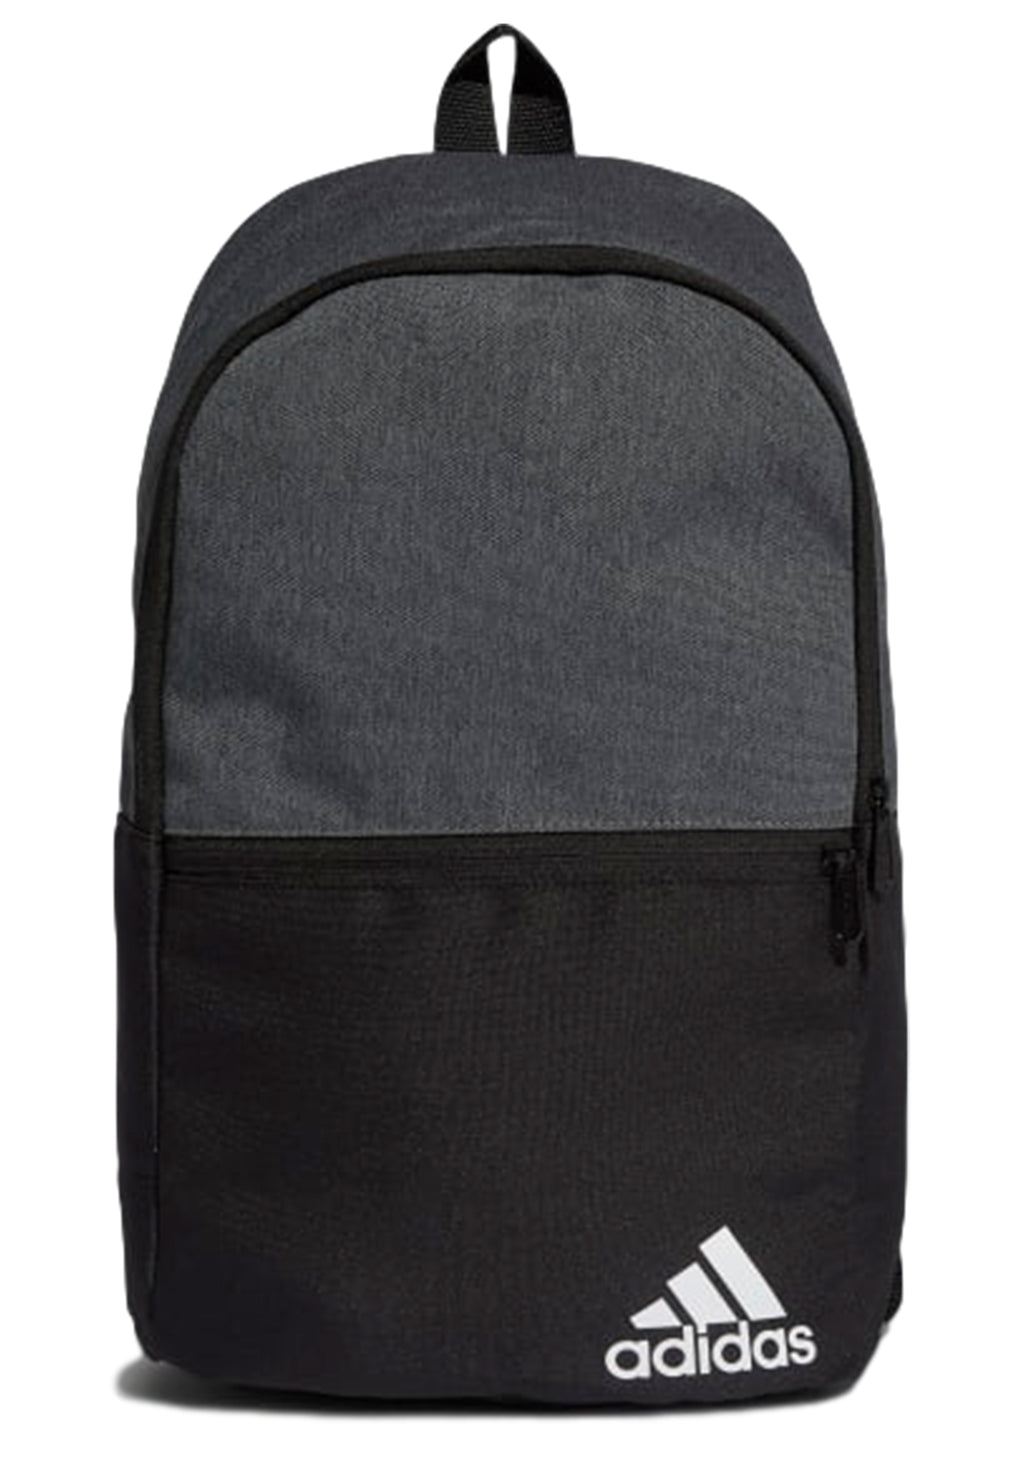 ADIDAS DAILY II BACKPACK <BR> GE1206